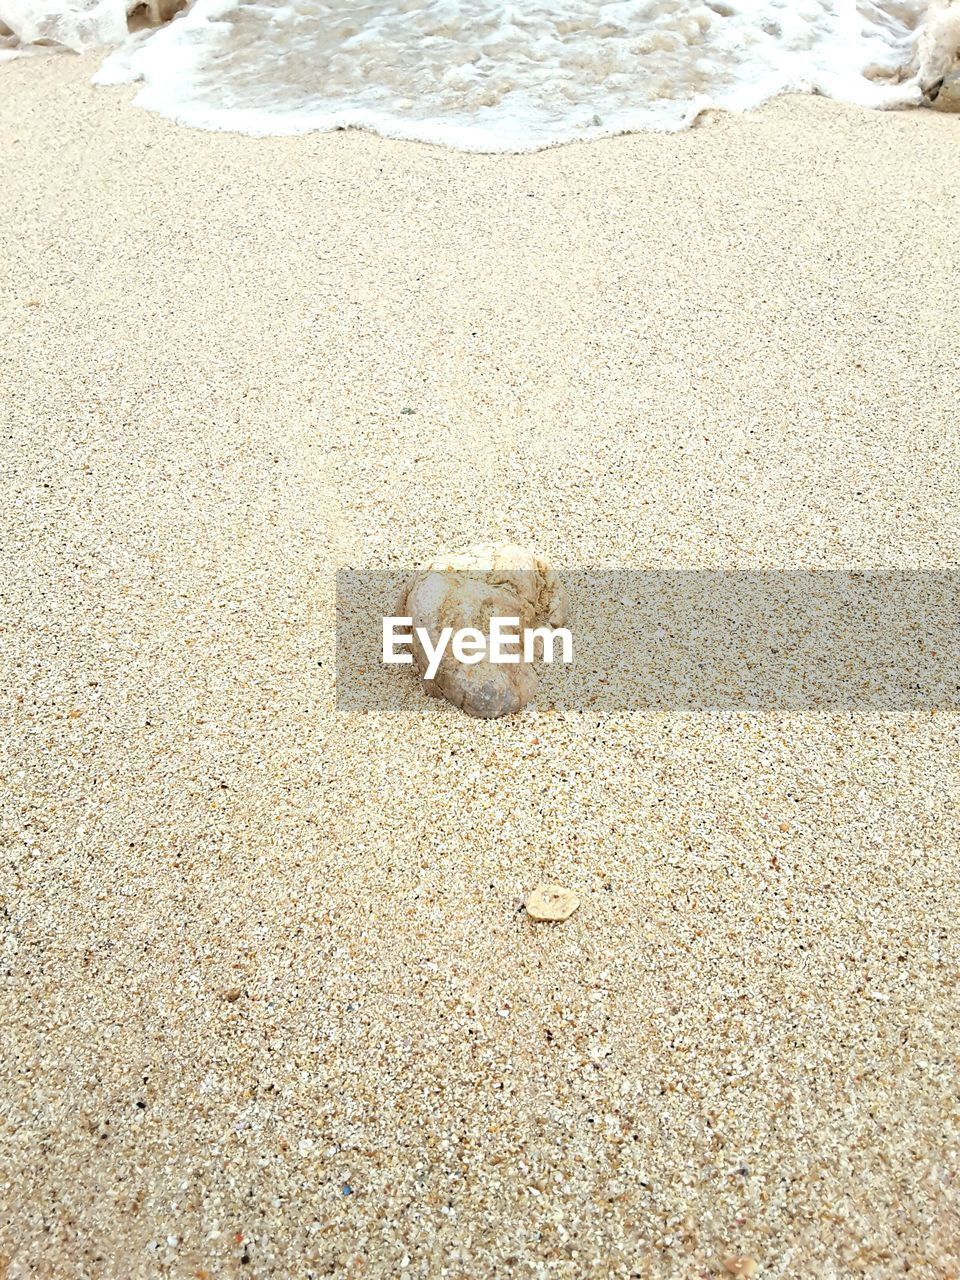 sand, beach, one animal, shore, high angle view, nature, animal themes, day, outdoors, no people, sea, dog, animals in the wild, pets, mammal, domestic animals, water